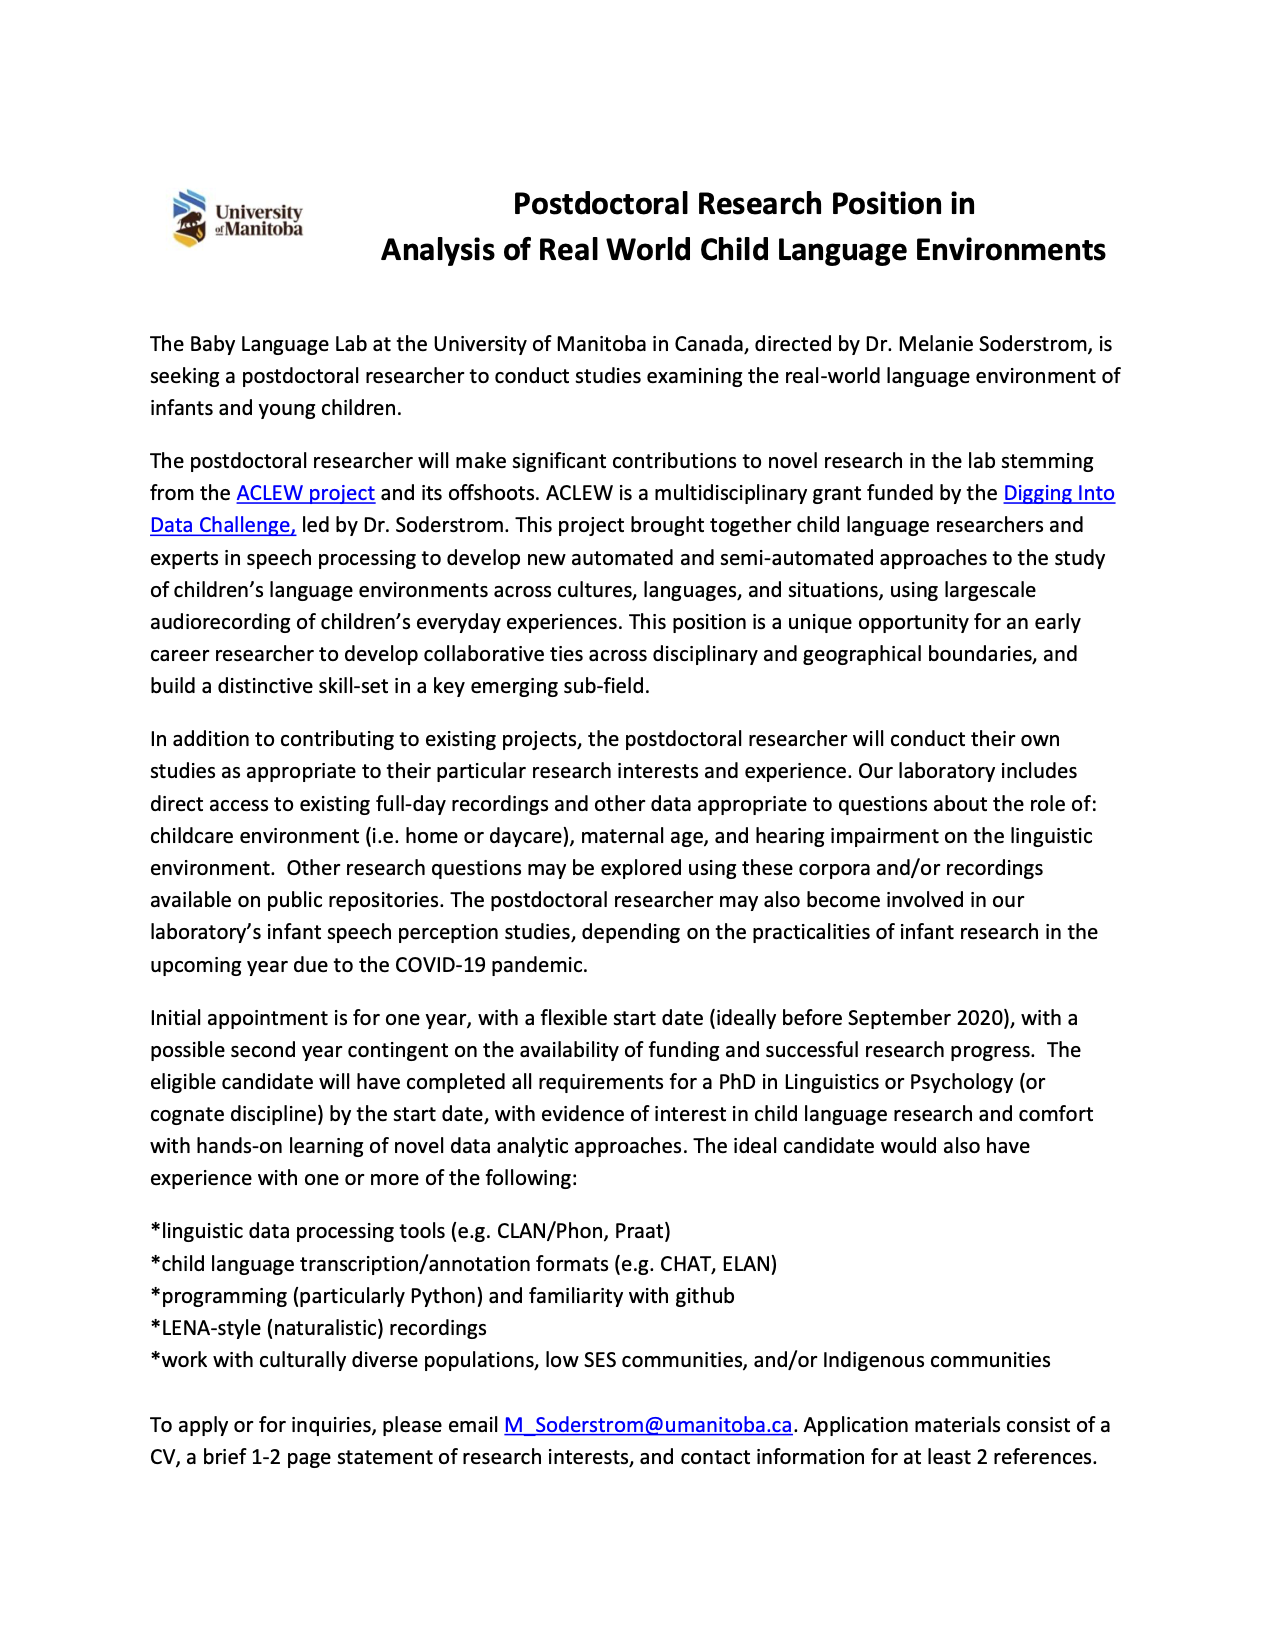 Postdoctoral Research Position in Analysis of Real World Child Language Environments The Baby Language Lab at the University of Manitoba in Canada, directed by Dr. Melanie Soderstrom, is seeking a postdoctoral researcher to conduct studies examining the real-world language environment of infants and young children. The postdoctoral researcher will make significant contributions to novel research in the lab stemming from the ACLEW project and its offshoots. ACLEW is a multidisciplinary grant funded by the Digging Into Data Challenge, led by Dr. Soderstrom. This project brought together child language researchers and experts in speech processing to develop new automated and semi-automated approaches to the study of children's language environments across cultures, languages, and situations, using largescale audiorecording of children's everyday experiences. This position is a unique opportunity for an early career researcher to develop collaborative ties across disciplinary and geographical boundaries, and build a distinctive skill-set in a key emerging sub-field. In addition to contributing to existing projects, the postdoctoral researcher will conduct their own studies as appropriate to their particular research interests and experience. Our laboratory includes direct access to existing full-day recordings and other data appropriate to questions about the role of: childcare environment (i.e. home or daycare), maternal age, and hearing impairment on the linguistic environment. Other research questions may be explored using these corpora and/or recordings available on public repositories. The postdoctoral researcher may also become involved in our laboratory's infant speech perception studies, depending on the practicalities of infant research in the upcoming year due to the COVID-19 pandemic. Initial appointment is for one year, with a flexible start date (ideally before September 2020), with a possible second year contingent on the availability of funding and successful research progress. The eligible candidate will have completed all requirements for a PhD in Linguistics or Psychology (or cognate discipline) by the start date, with evidence of interest in child language research and comfort with hands-on learning of novel data analytic approaches. The ideal candidate would also have experience with one or more of the following: *linguistic data processing tools (e.g. CLAN/Phon, Praat) *child language transcription/annotation formats (e.g. CHAT, ELAN) *programming (particularly Python) and familiarity with github *LENA-style (naturalistic) recordings *work with culturally diverse populations, low SES communities, and/or Indigenous communities To apply or for inquiries, please email M_Soderstrom@umanitoba.ca. Application materials consist of a CV, a brief 1-2 page statement of research interests, and contact information for at least 2 references.